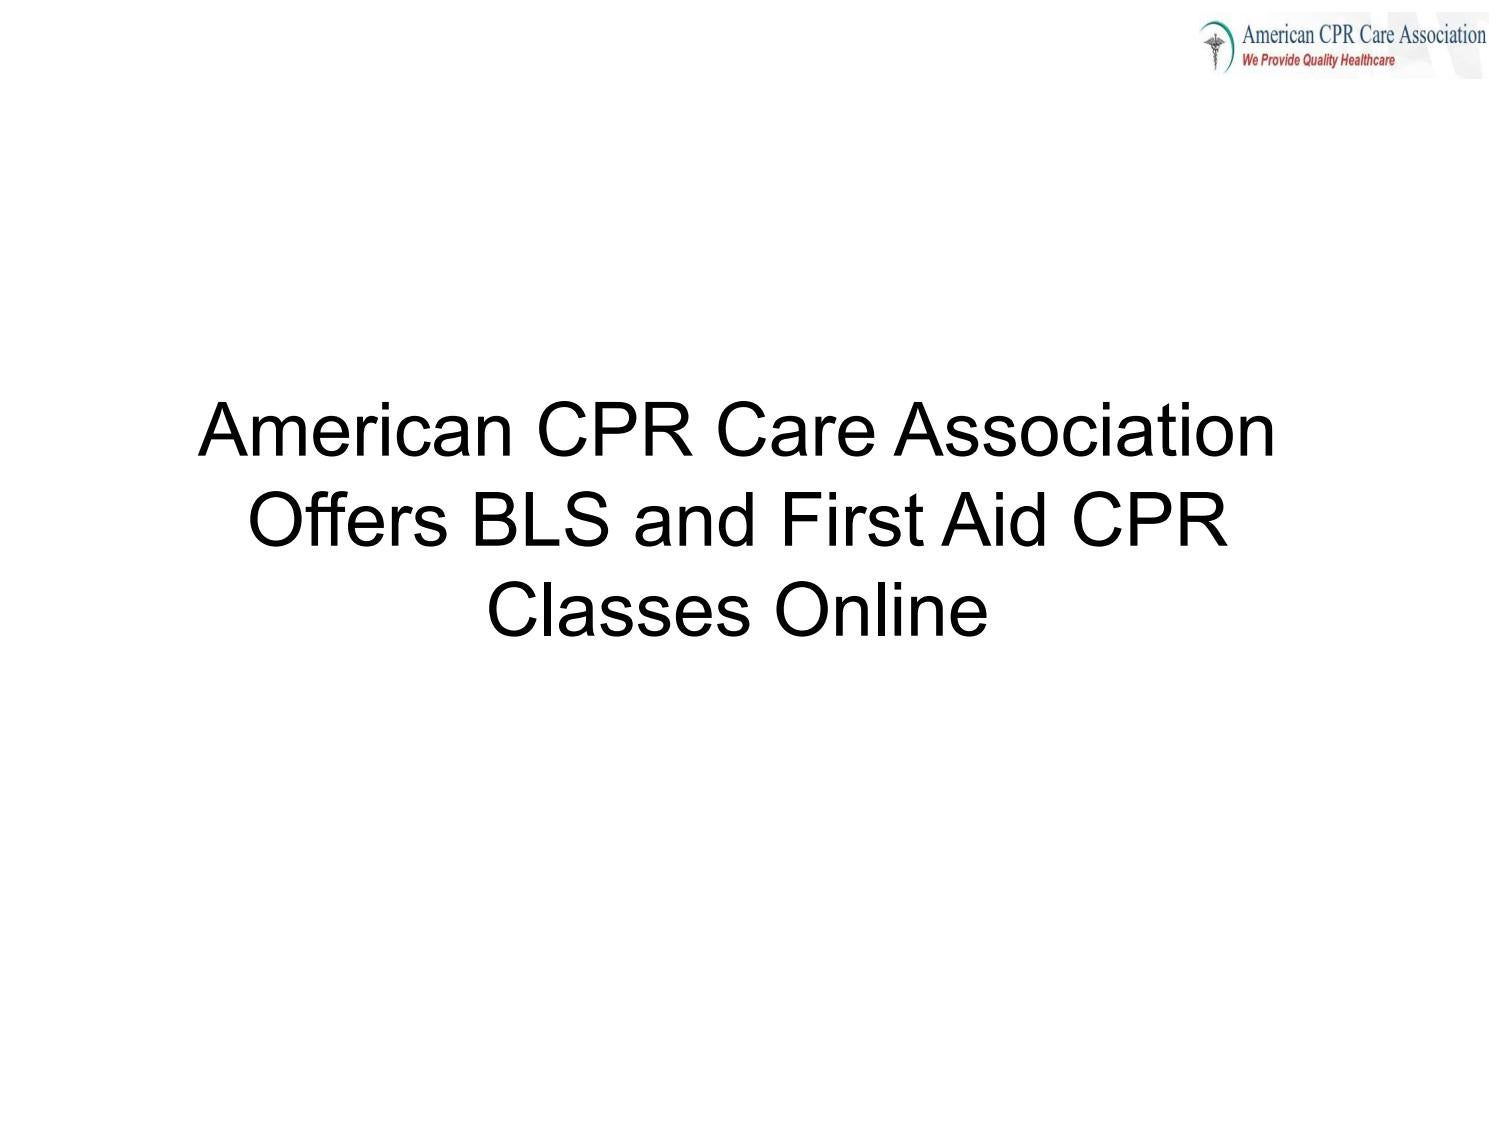 American Cpr Care Association Offers Bls And First Aid Cpr Classes